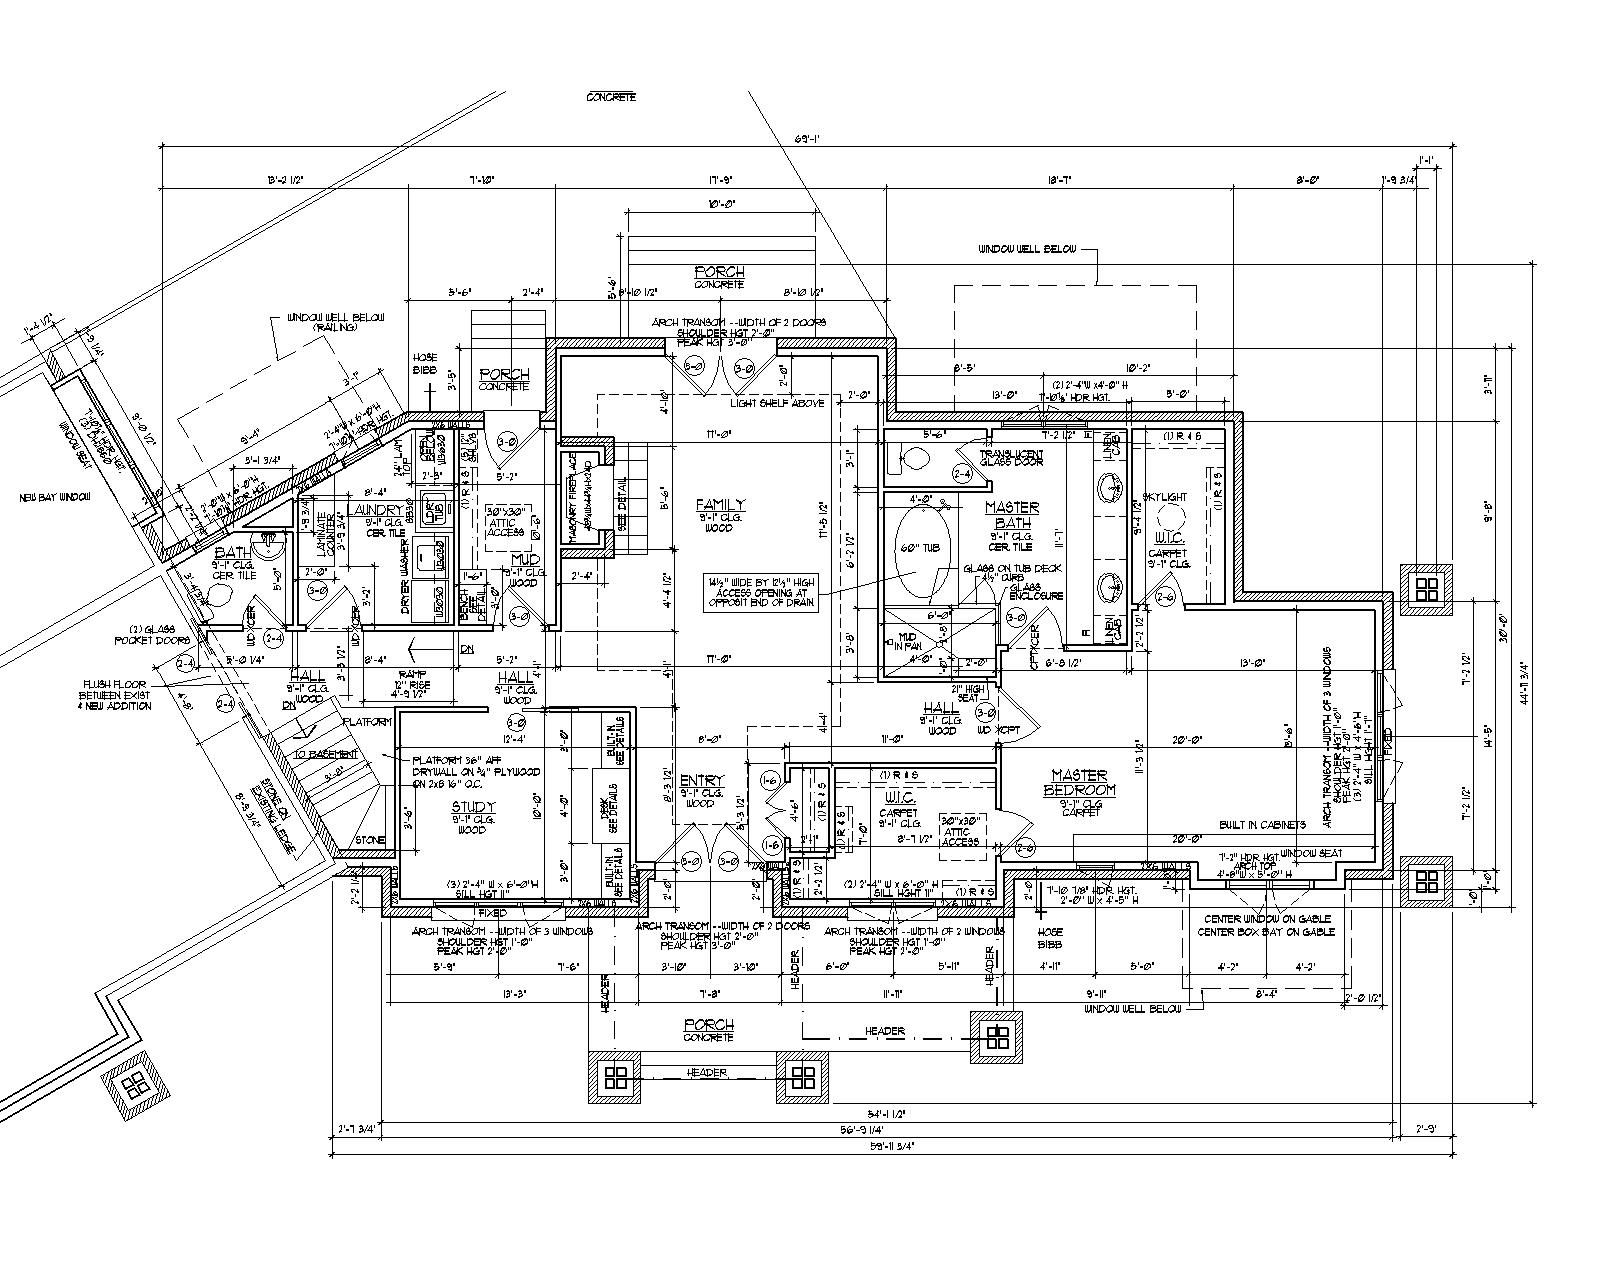 2d autocad house plans residential building drawings cad for Home building blueprints